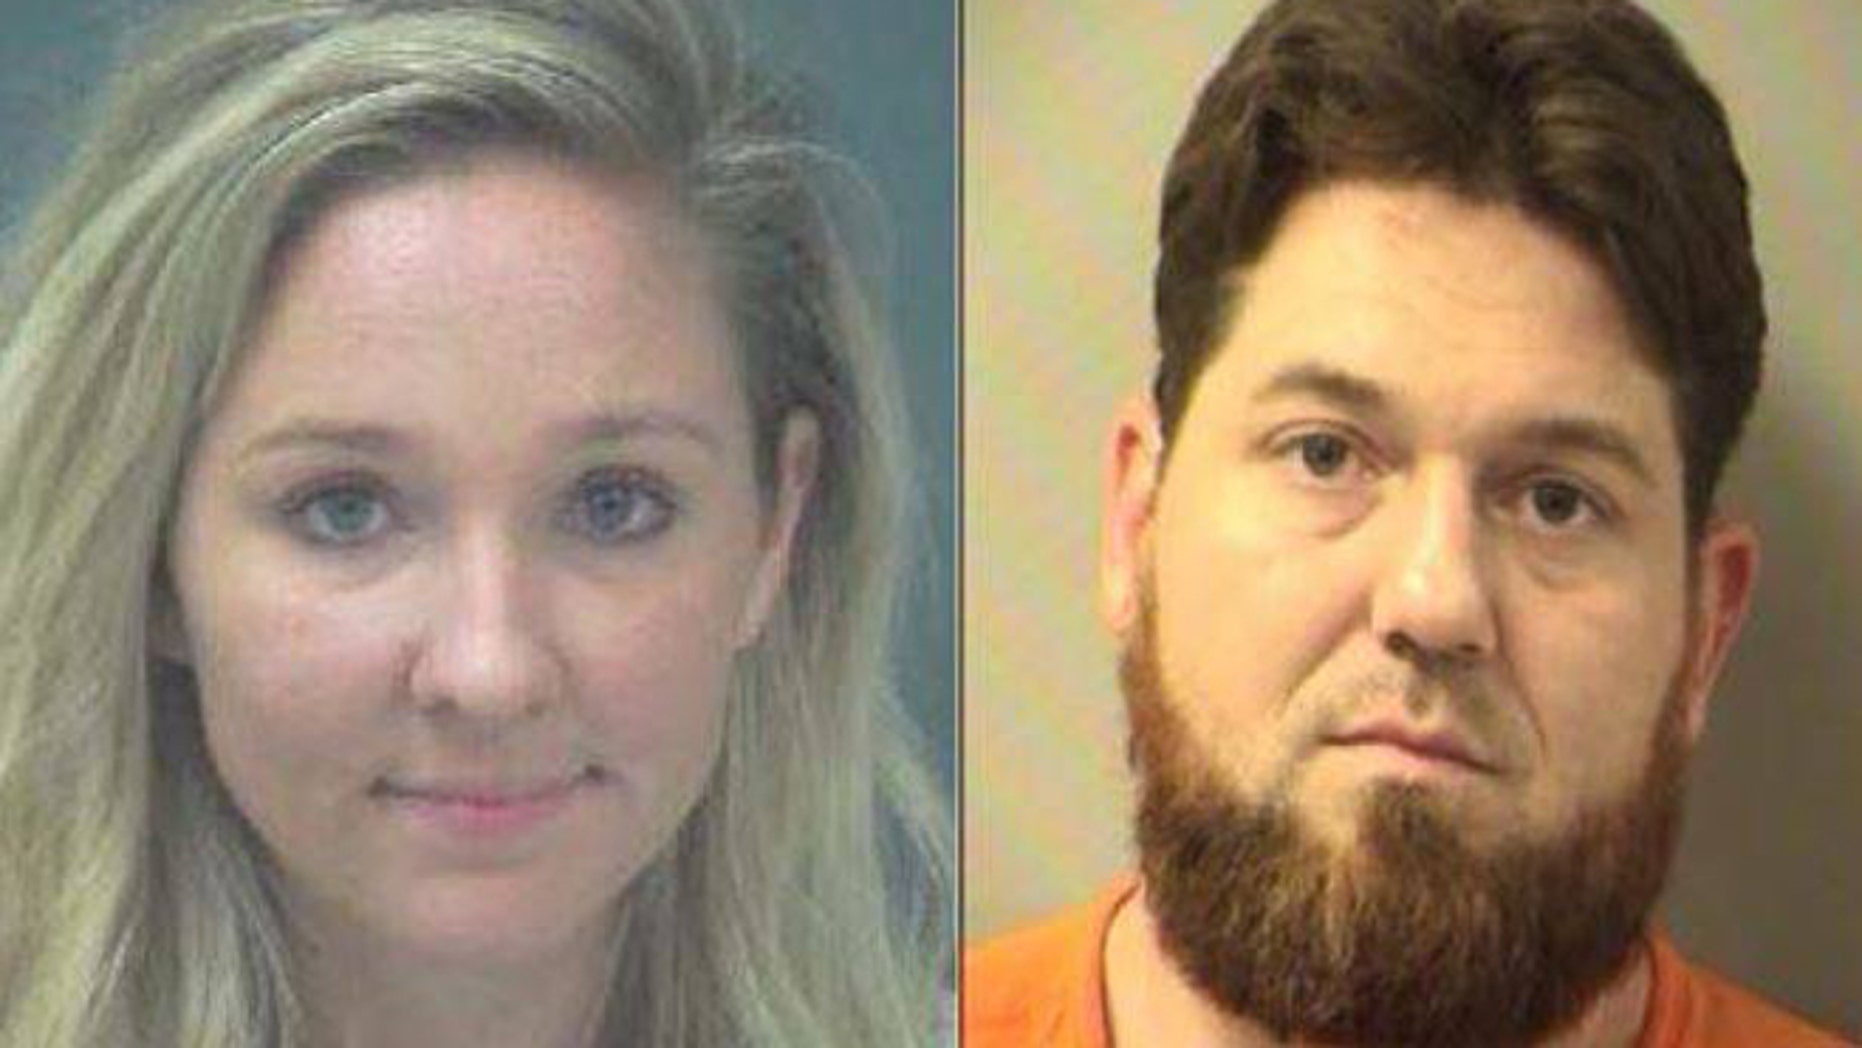 """Florida paramedics Kayla Dubois, 24, of Navarre, (left) and Christopher Wimmer, 33 of Crestview,(right) have been charged with taking """"selfies"""" with unconscious patients. (Okaloosa County Sheriff's Office)"""